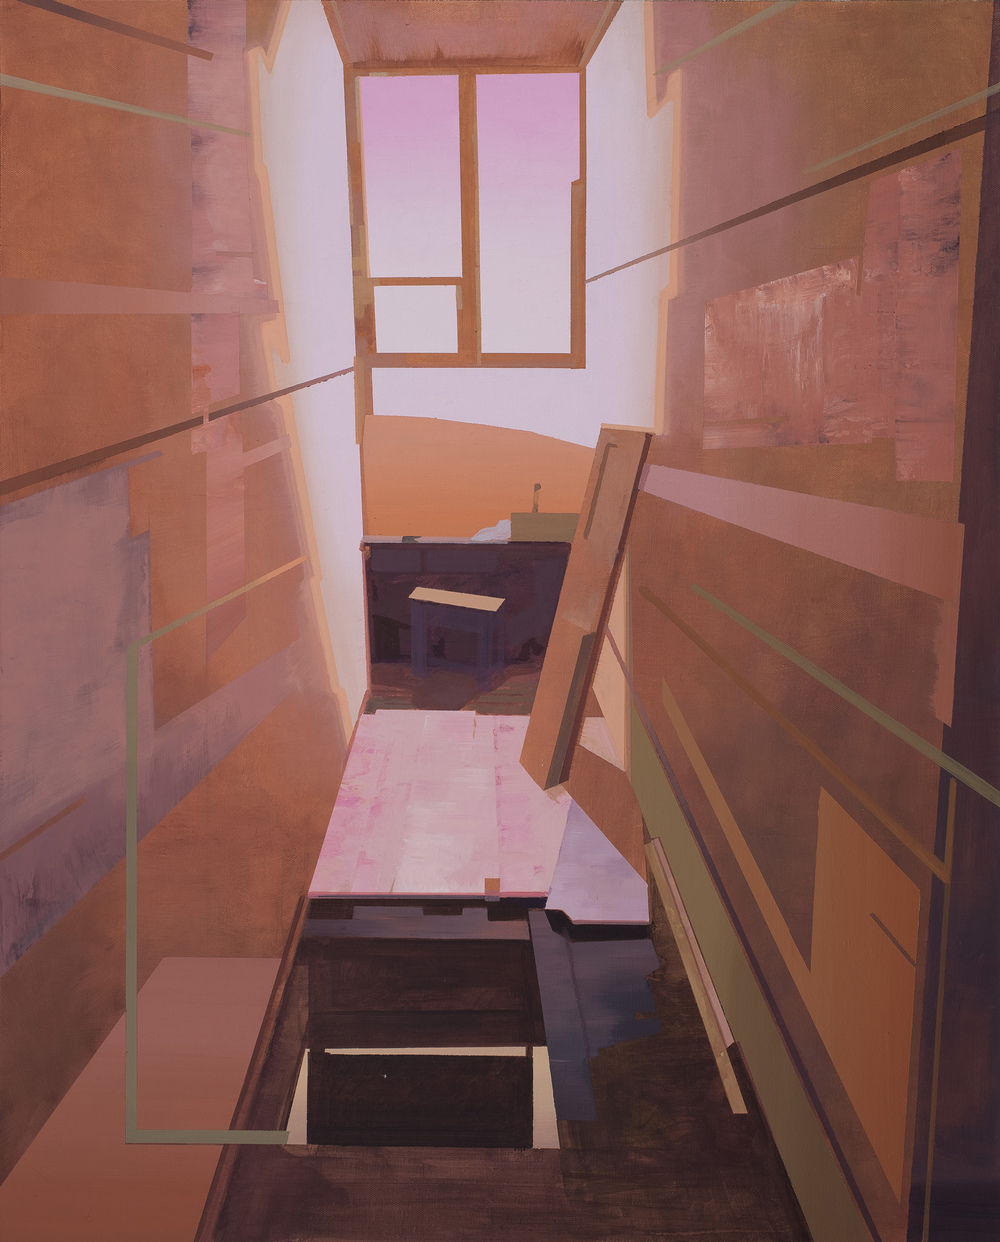 Hou Yong 侯勇, Window-3 窗-3, 2013, Acrylic on canvas 布面丙烯, 100 x 88 cm